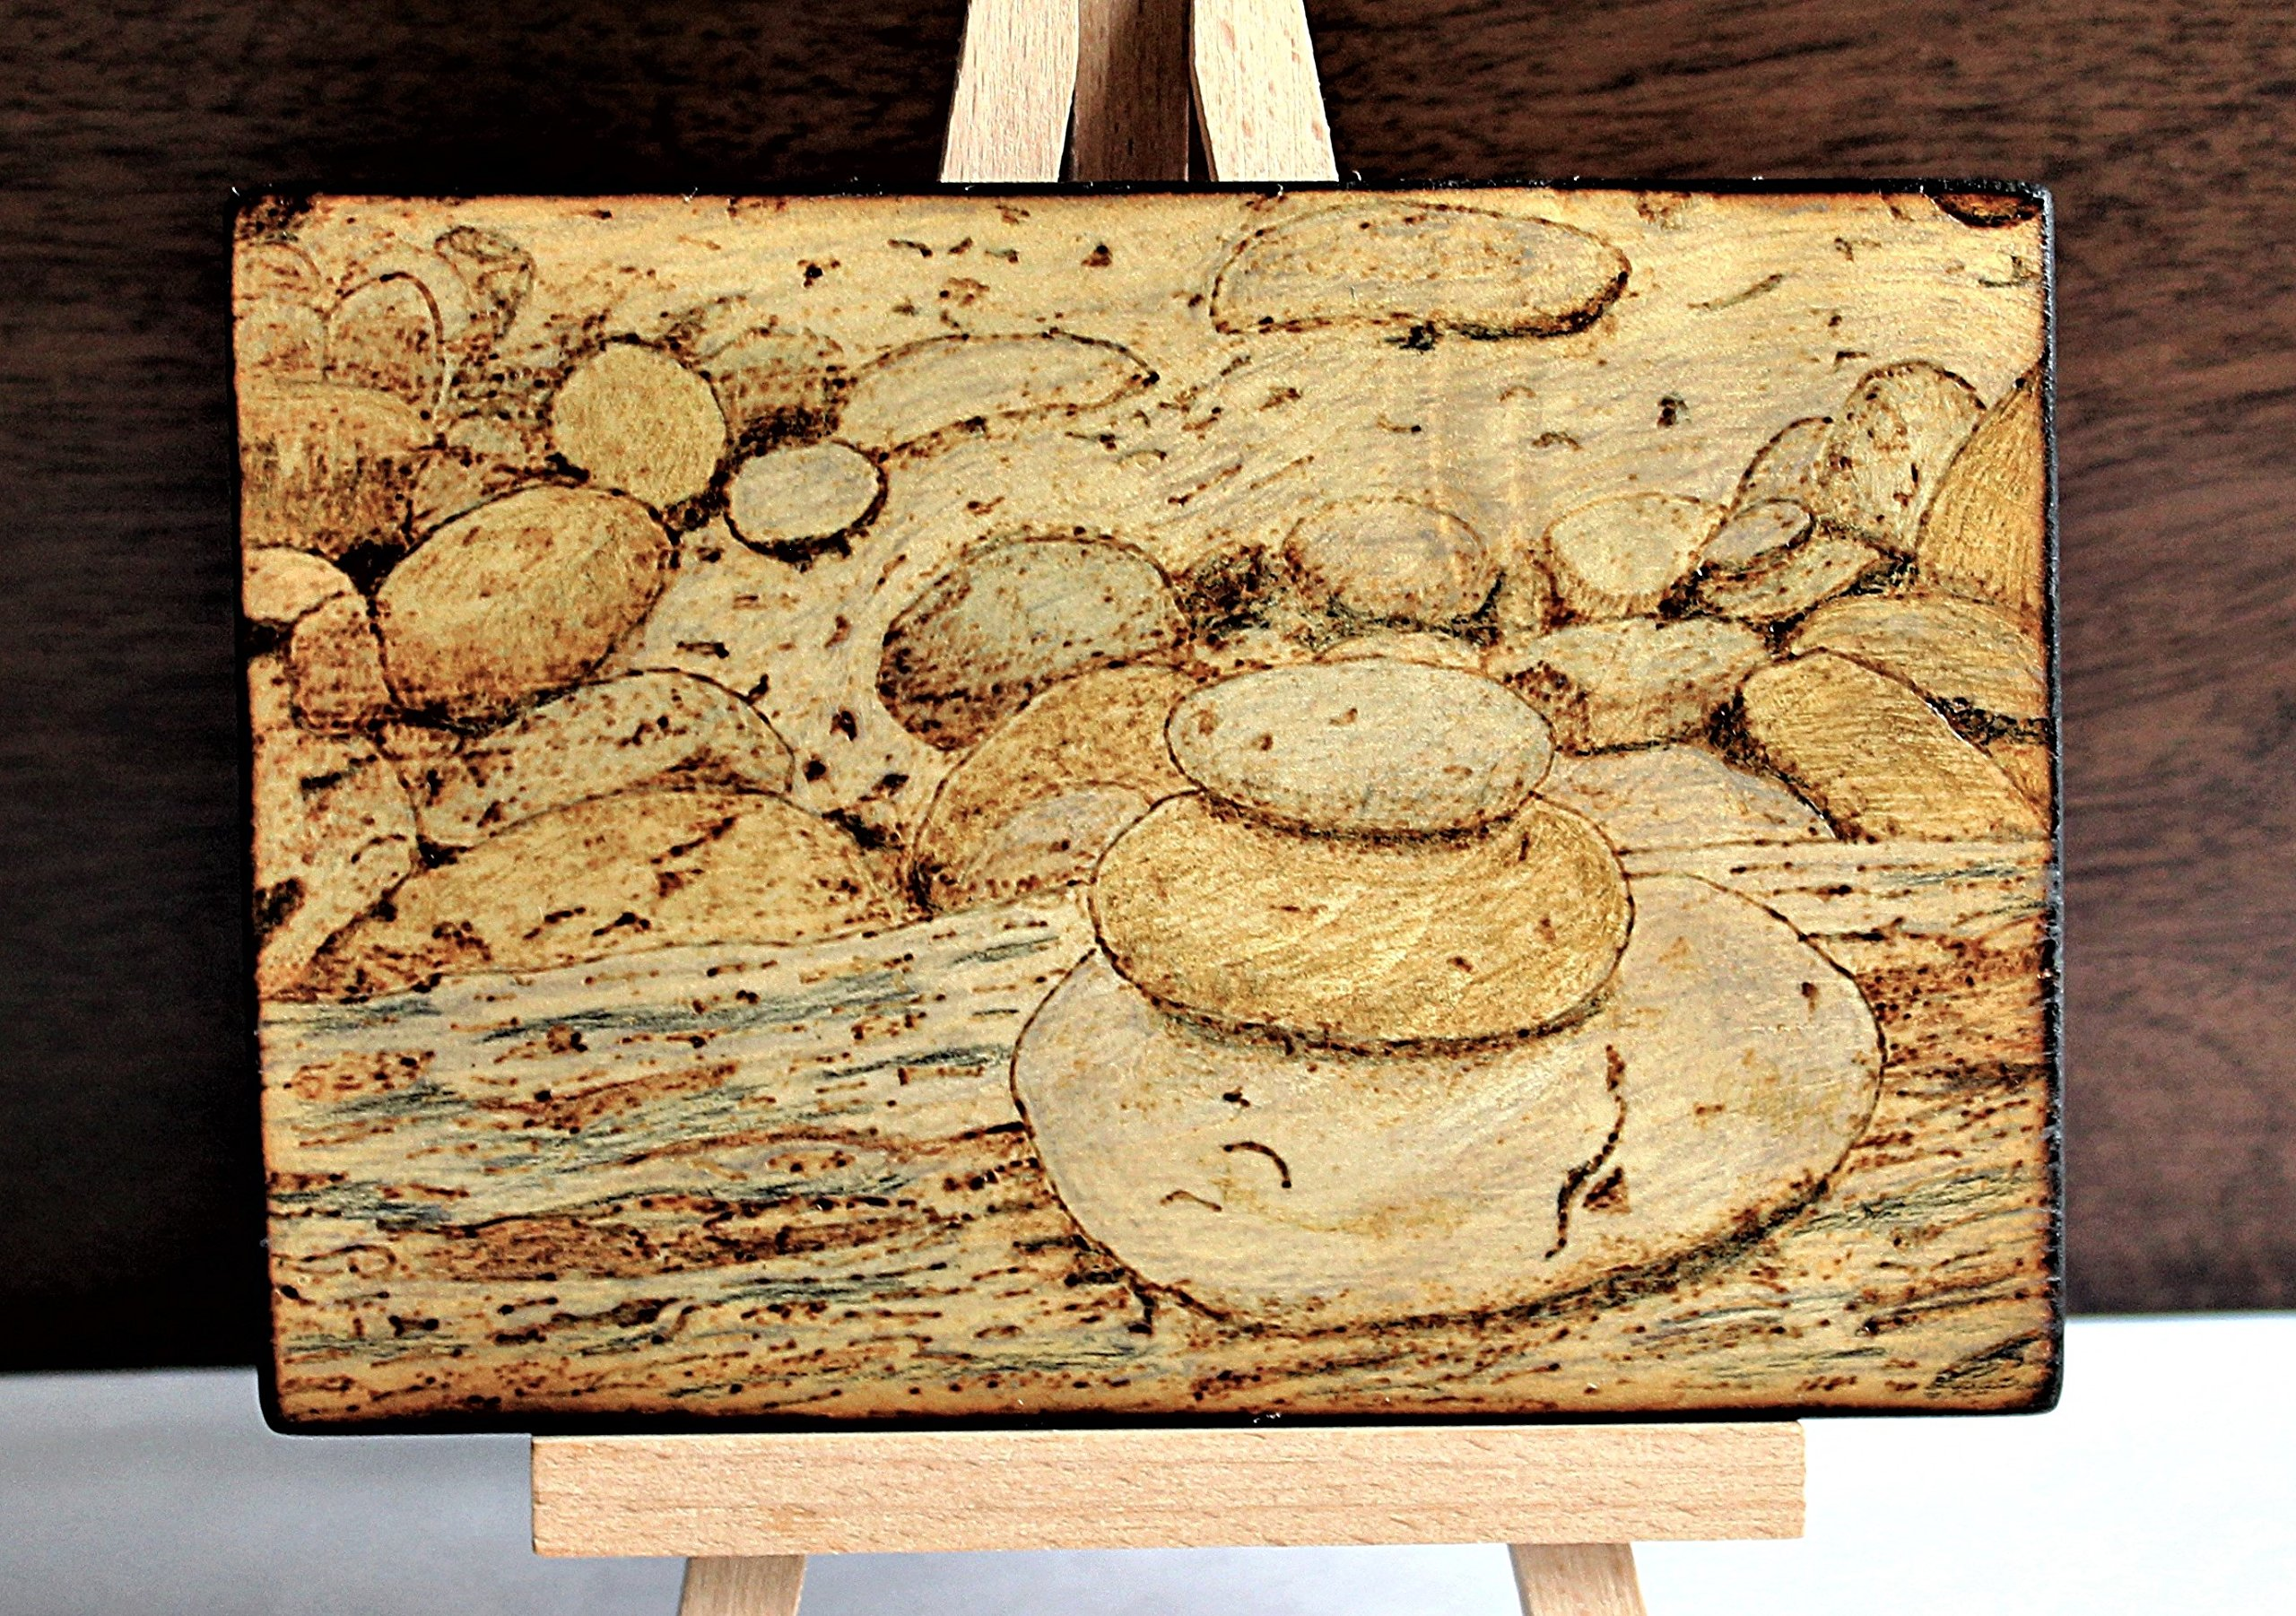 Wood Burned Cairn Stones Pyrography Small Woodburned Nature Rocky Shoreline Picture Desktop Art